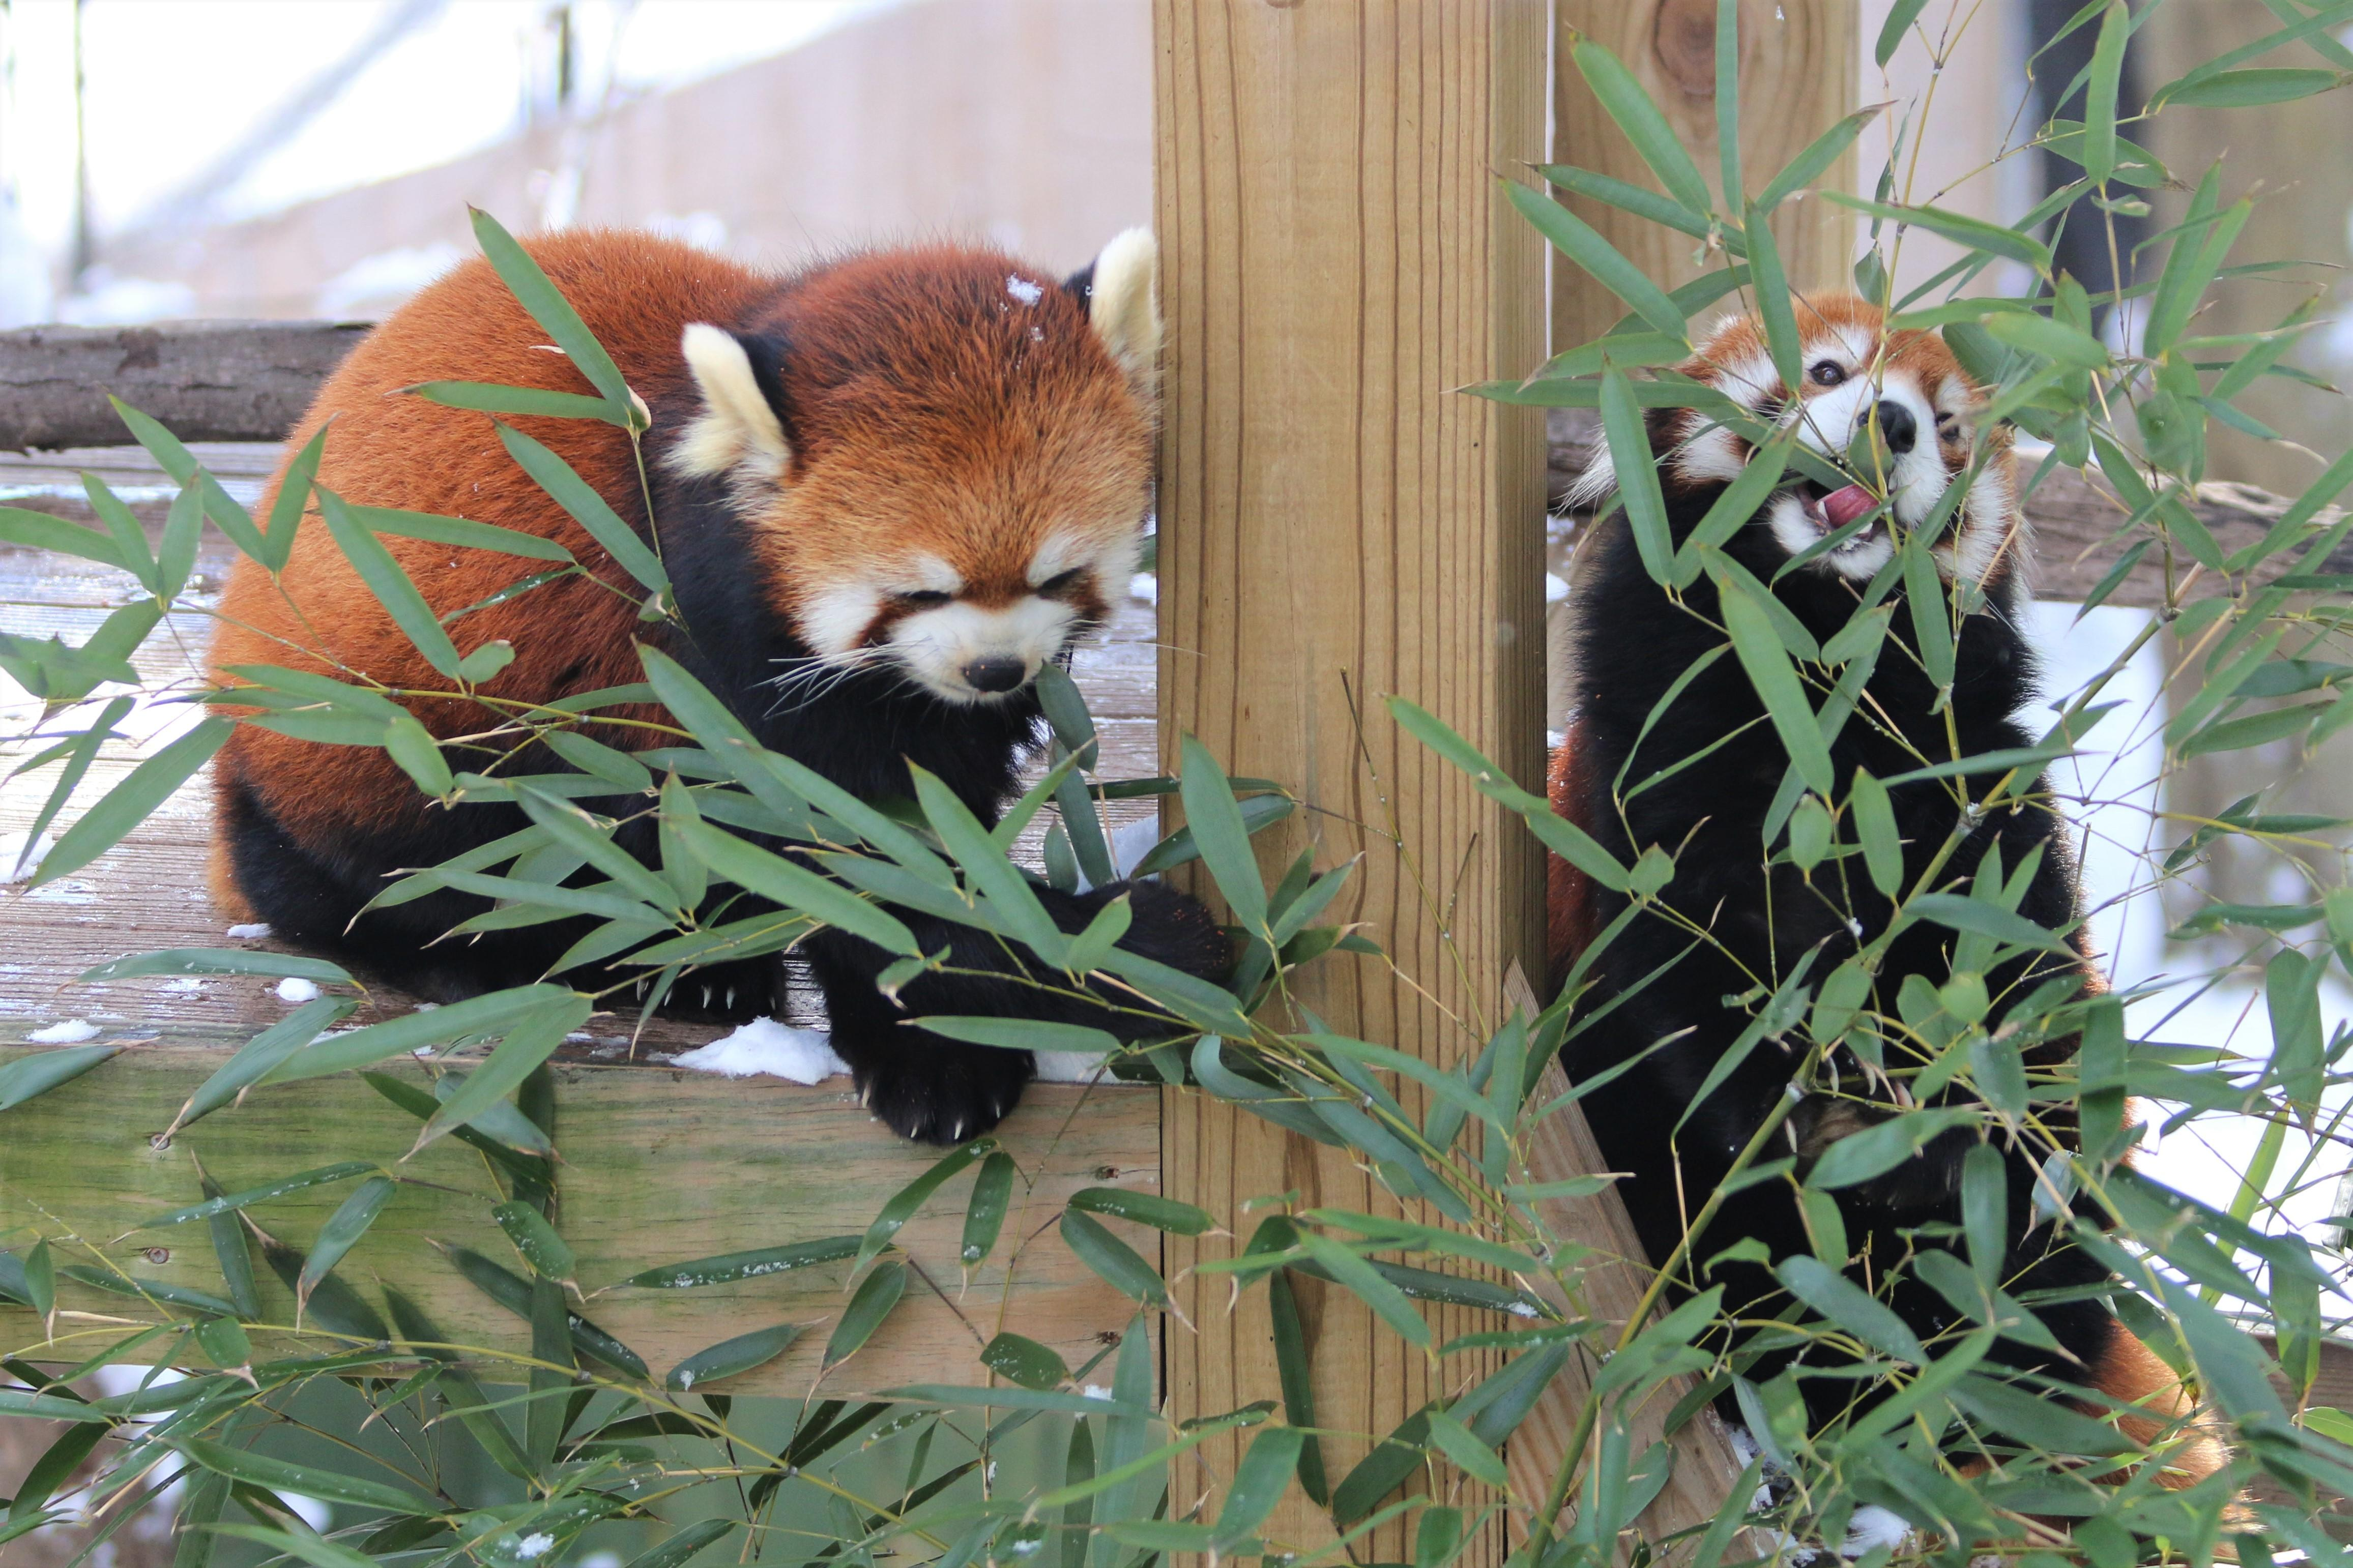 The red pandas are among the most popular animals on exhibit at Providence's historic Roger Williams Park Zoo, which offers lots of fun summer events. (Image: Courtesy The Roger Williams Park Zoo)